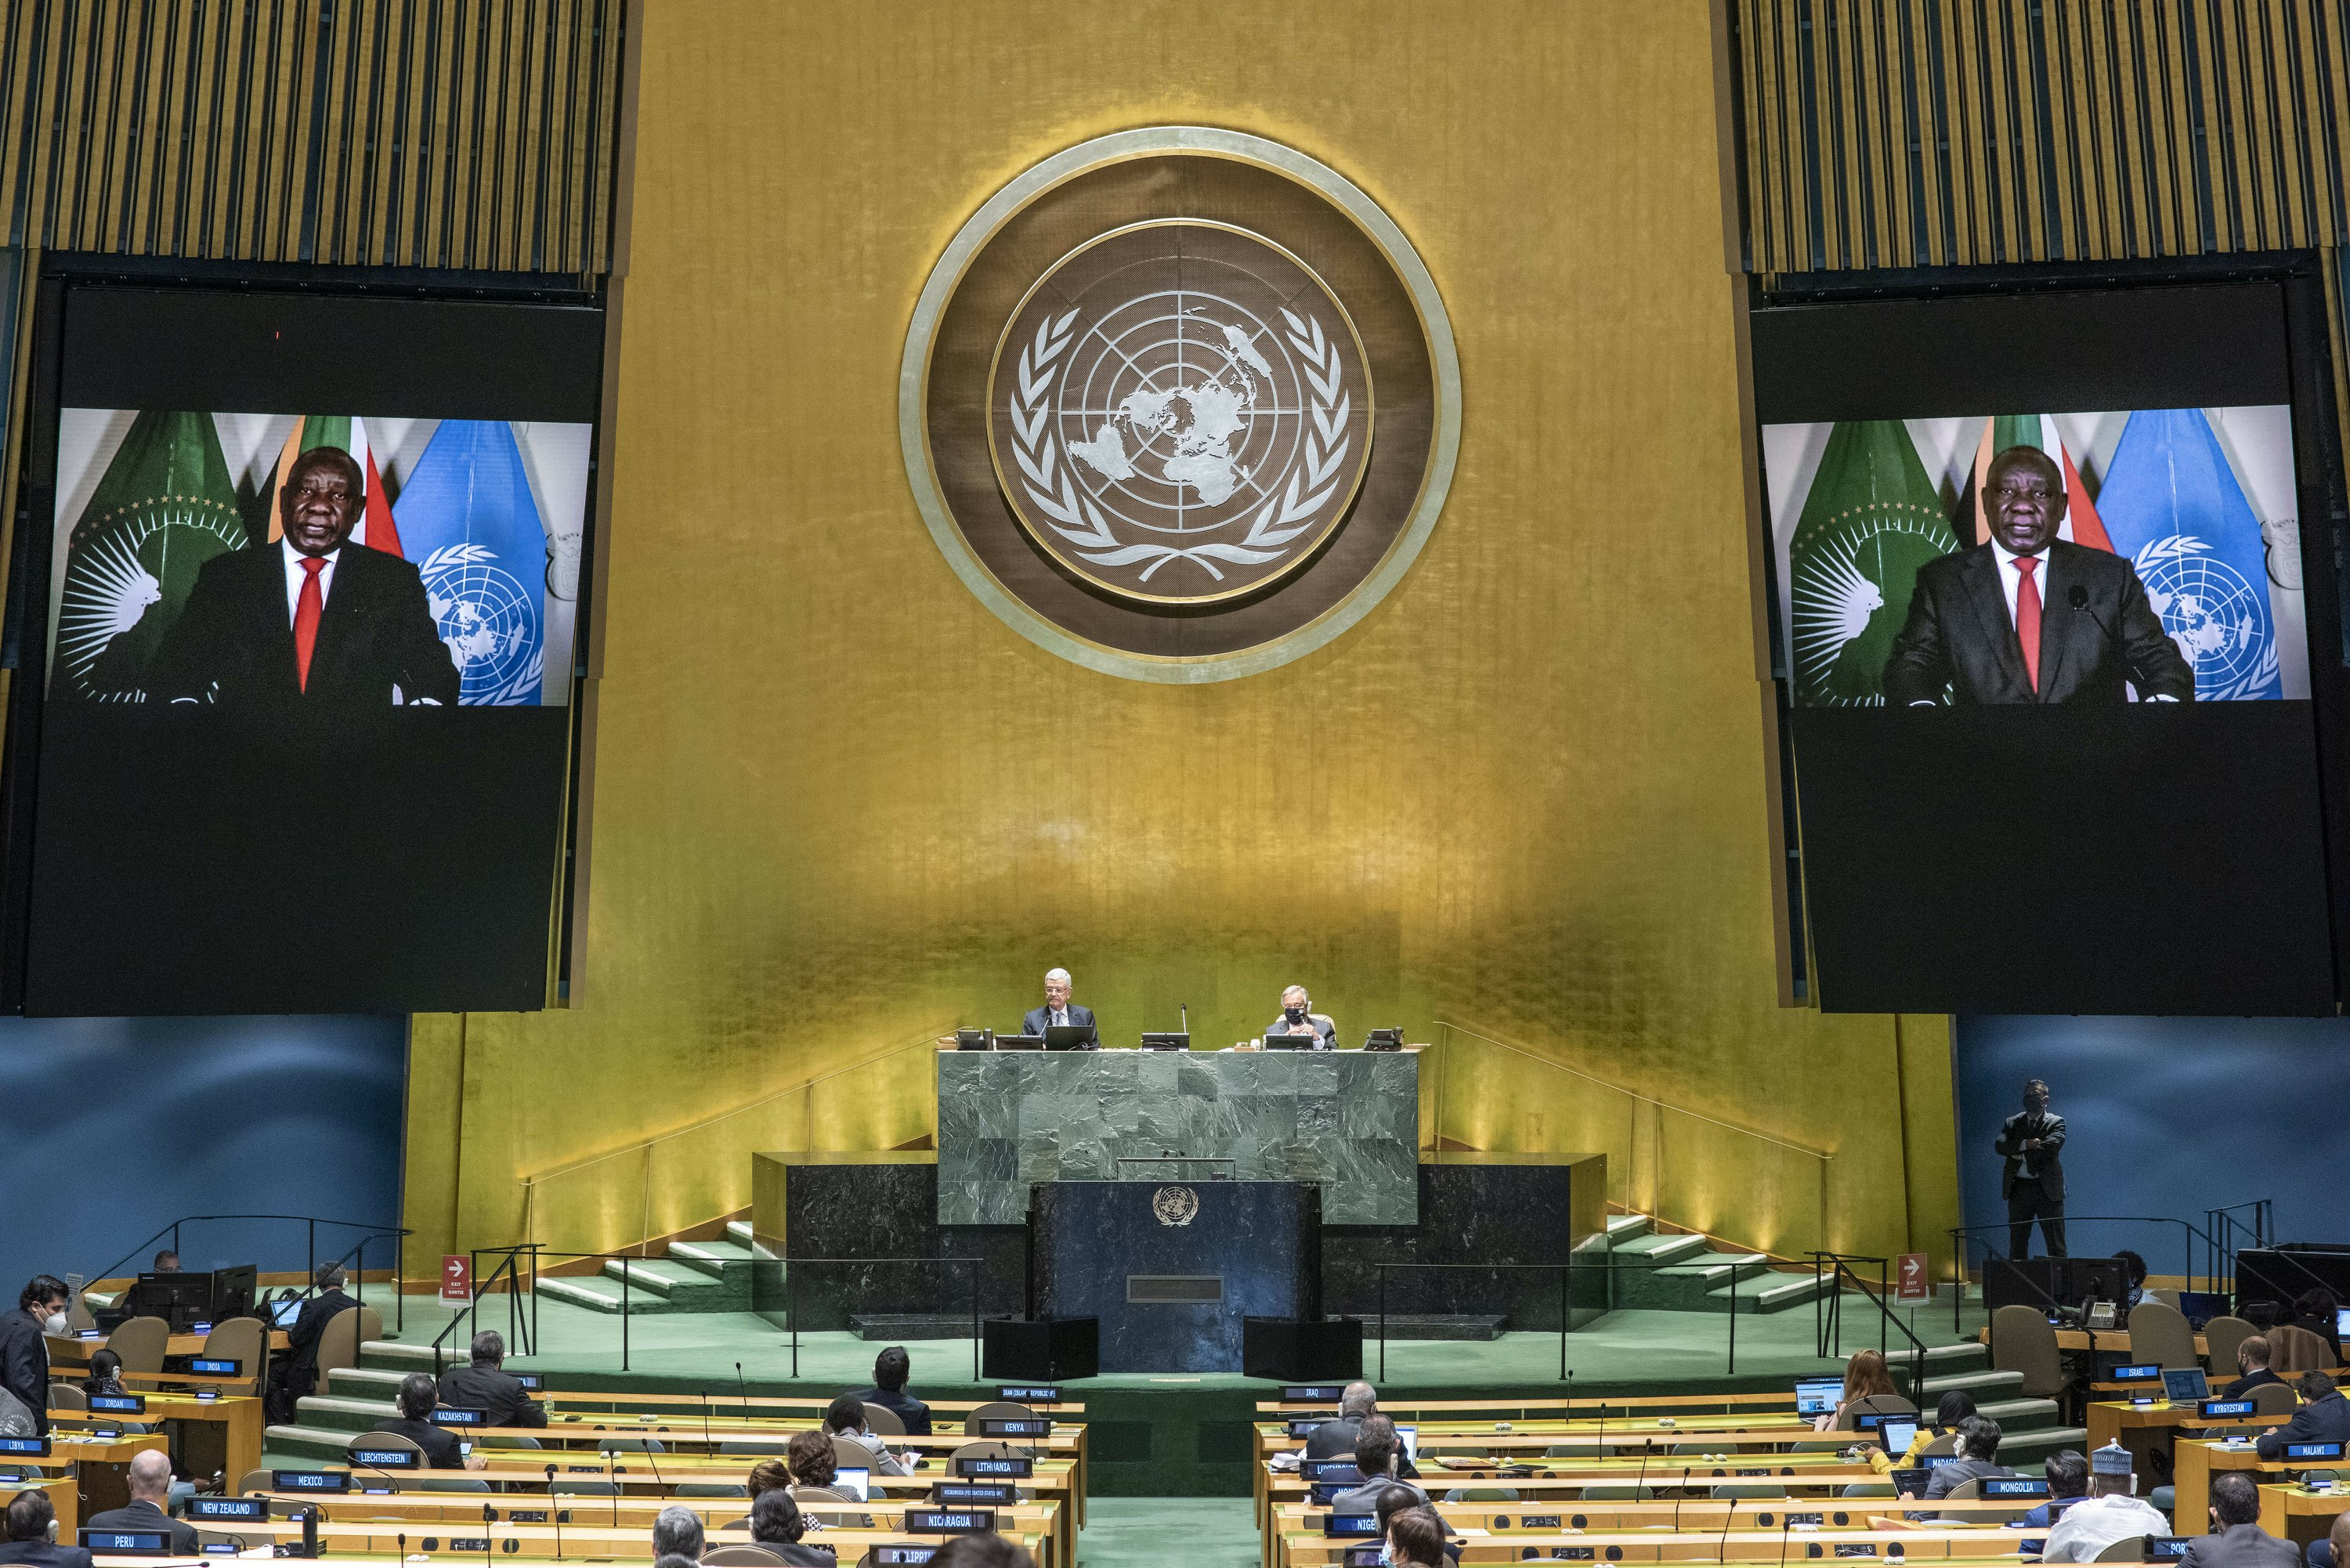 Telling COVID's story: At UN, leaders spin virus storylines